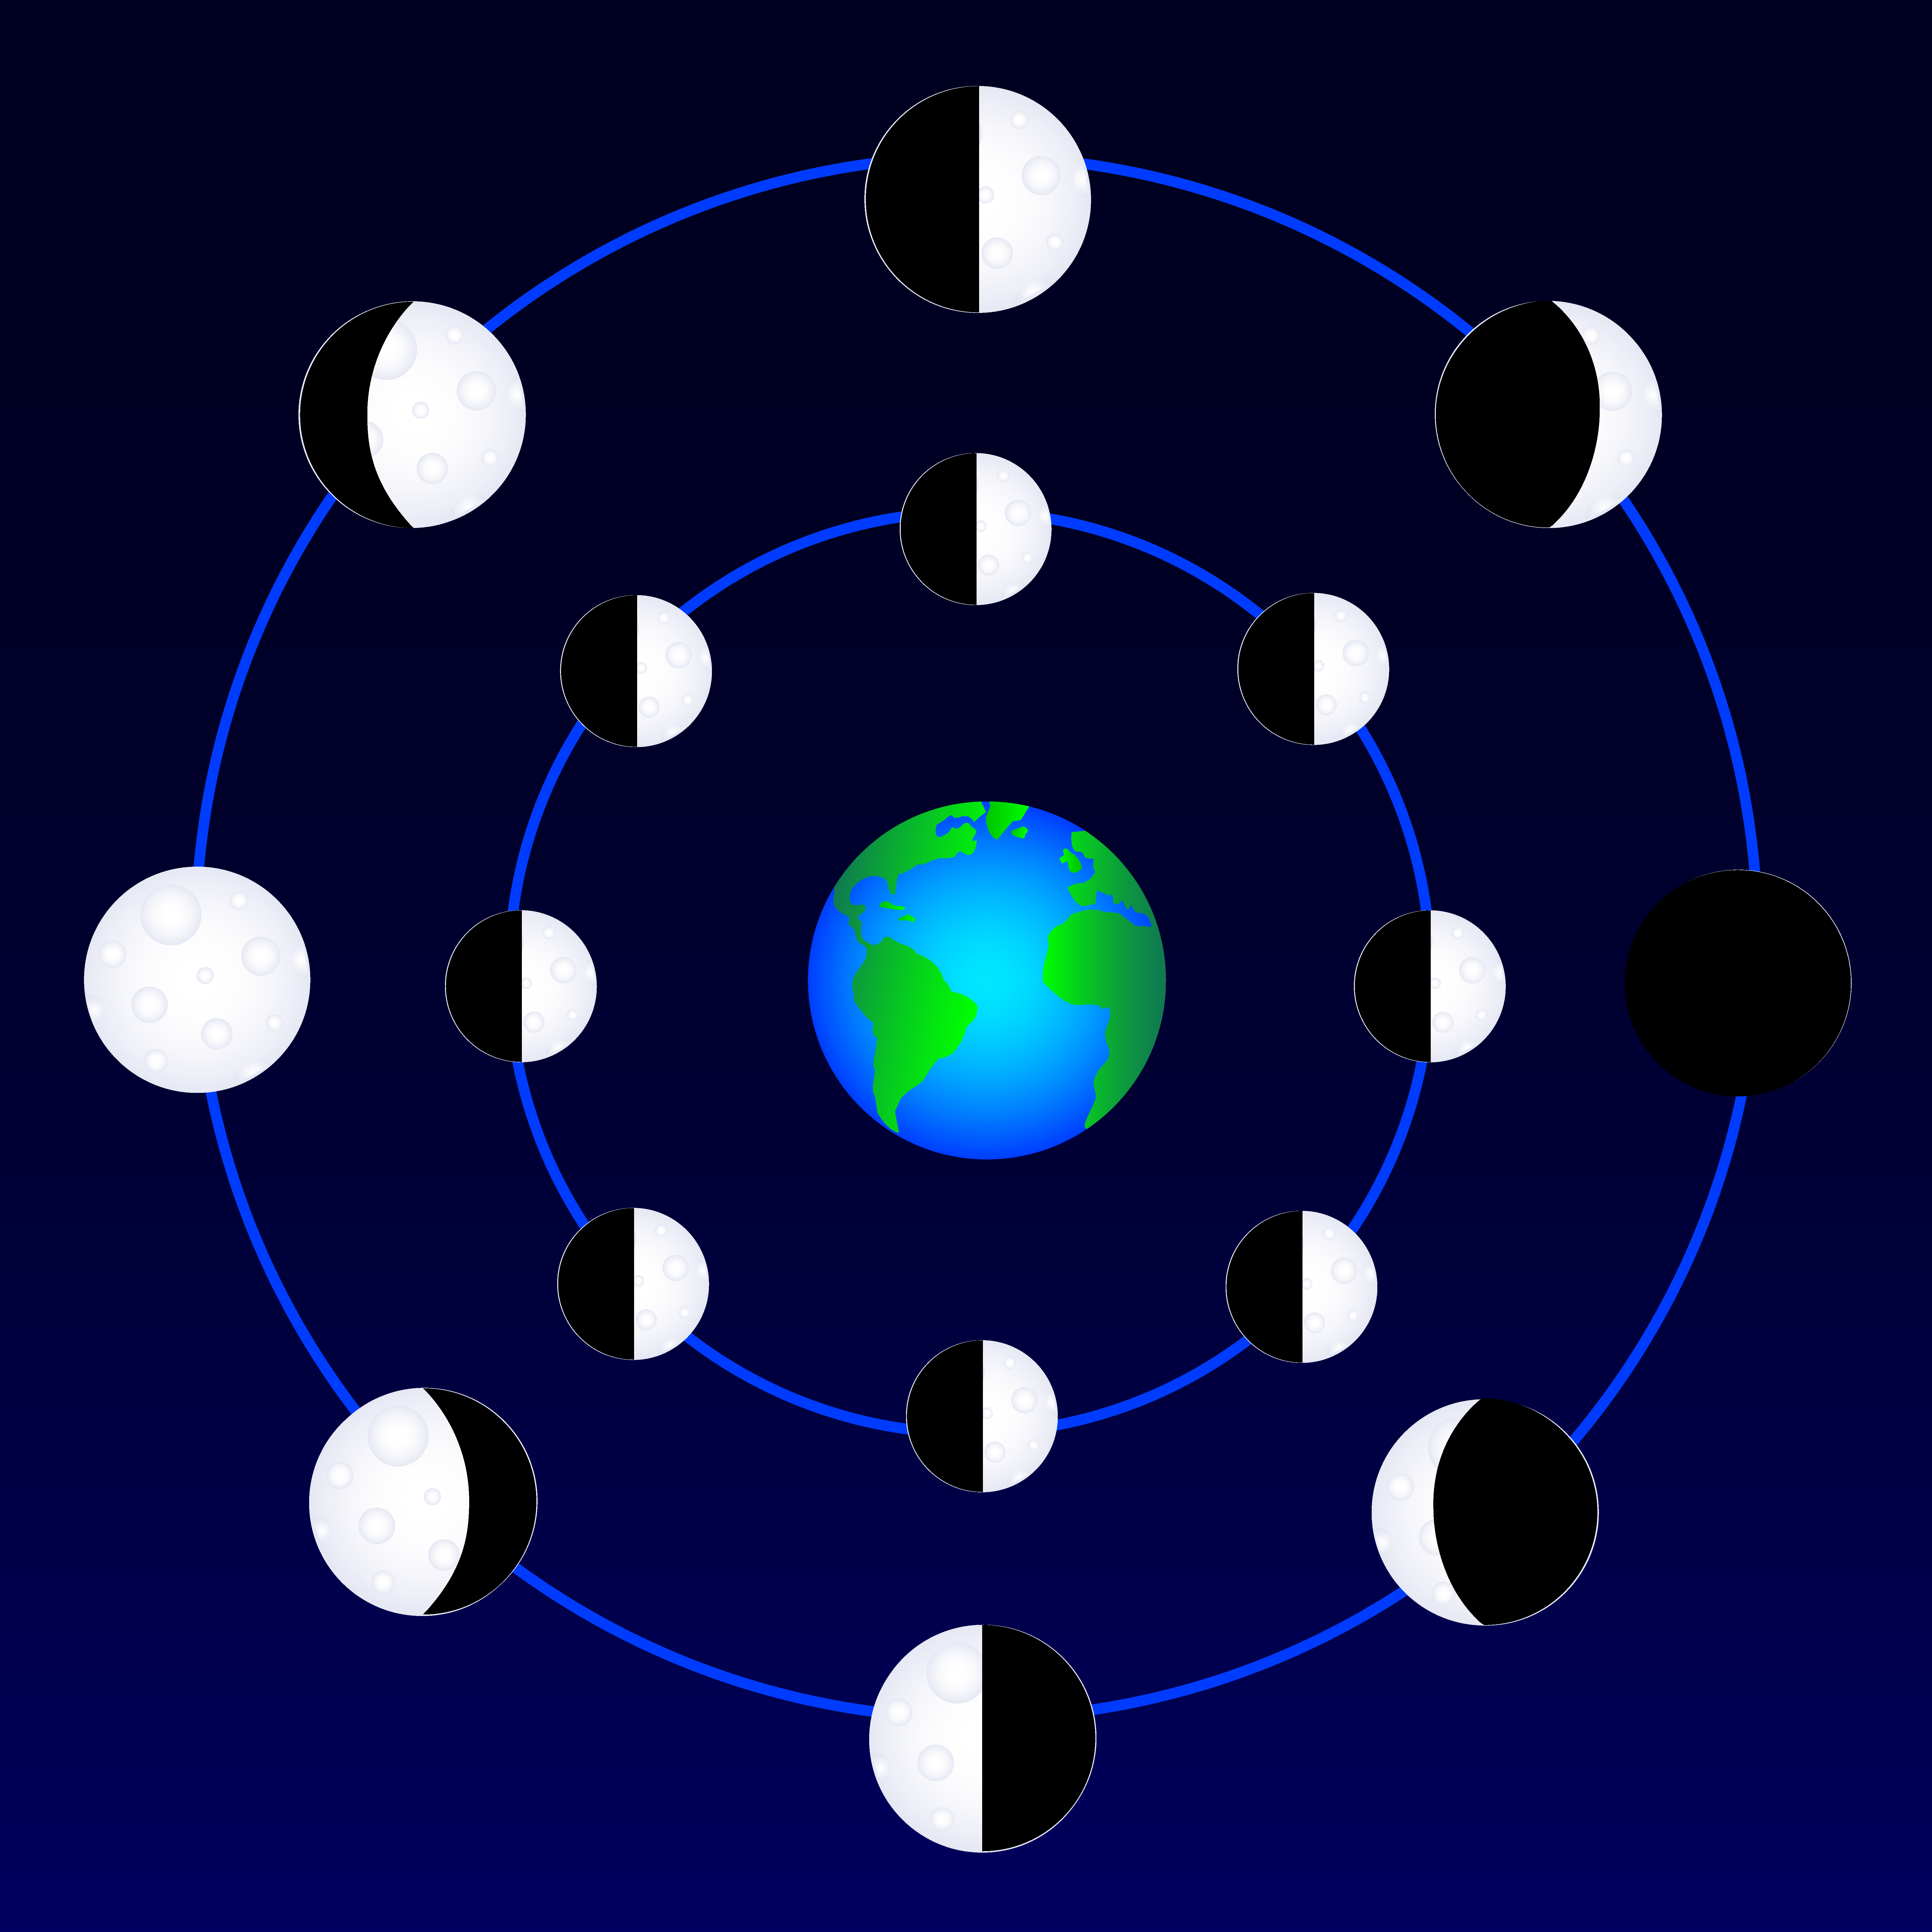 Earth and moon clipart - Clipground